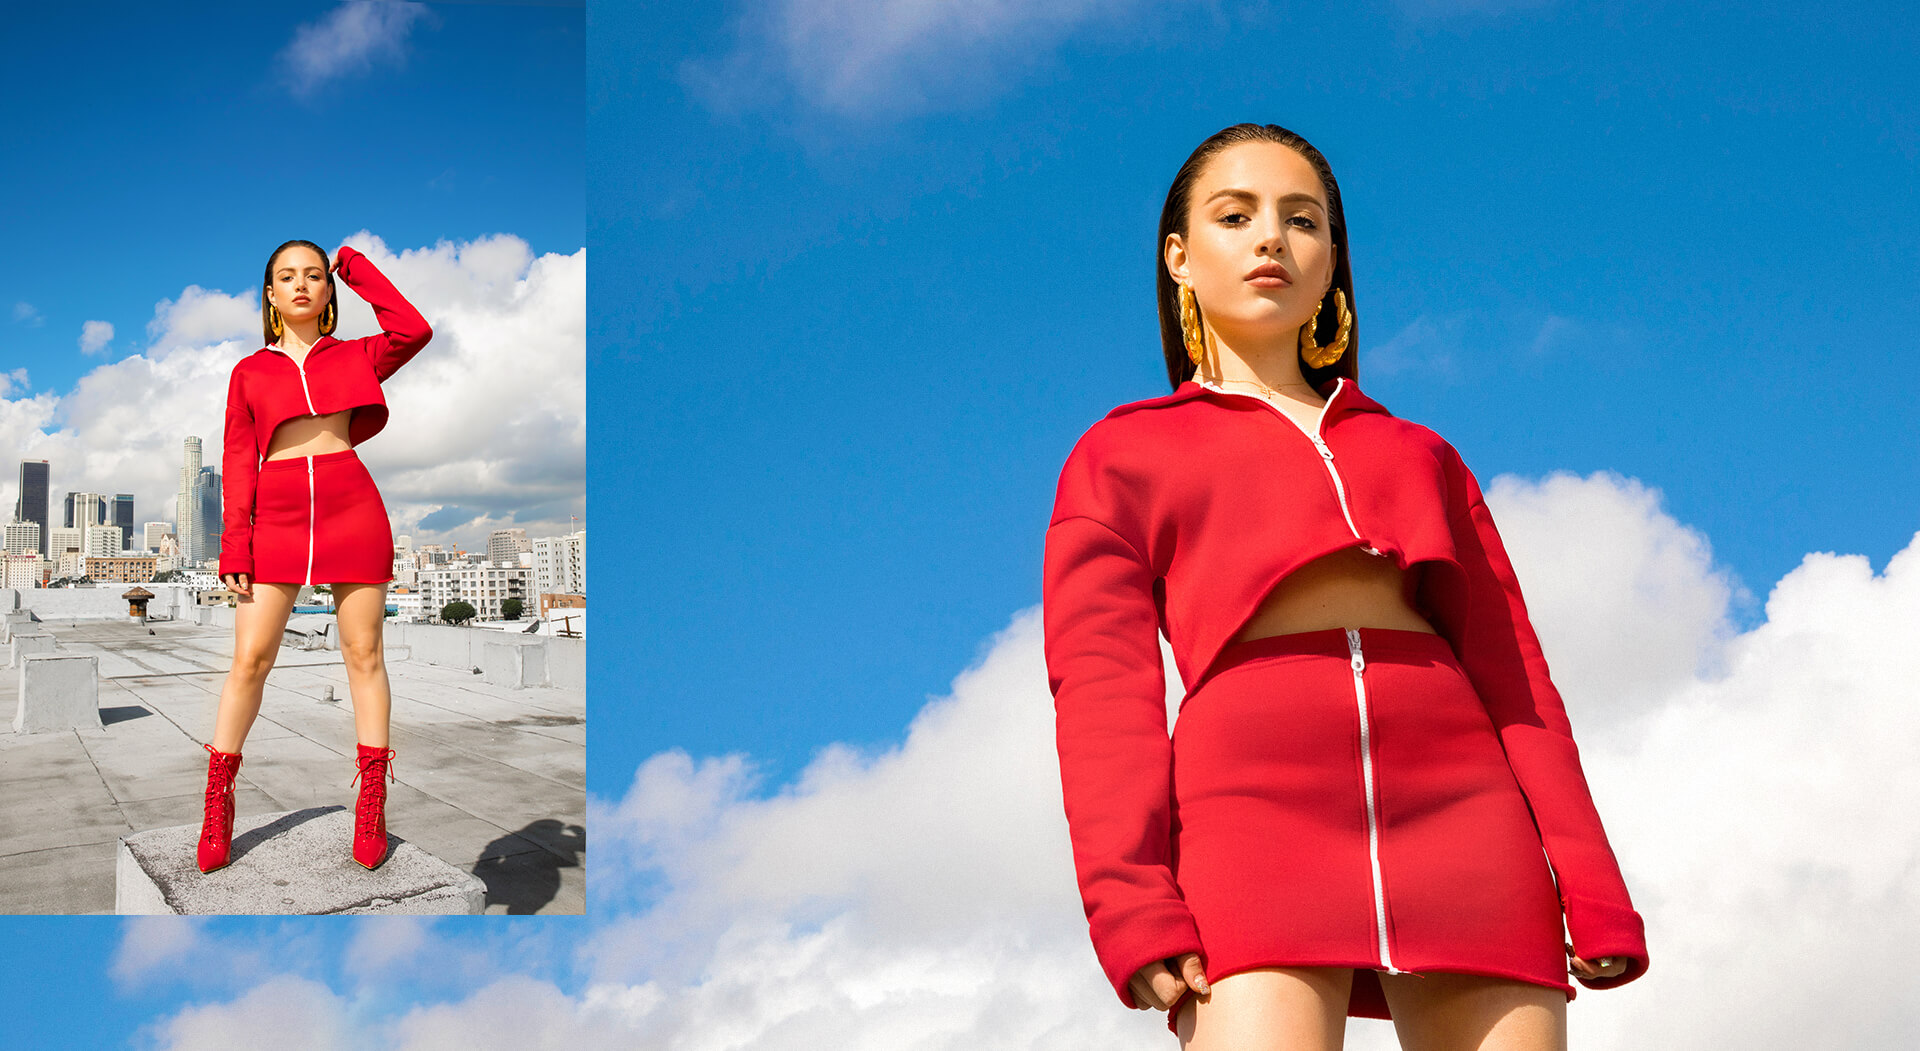 Nathalie Paris Red Crop Jacket & Red Mini Skirt Shoot 5 Desktop